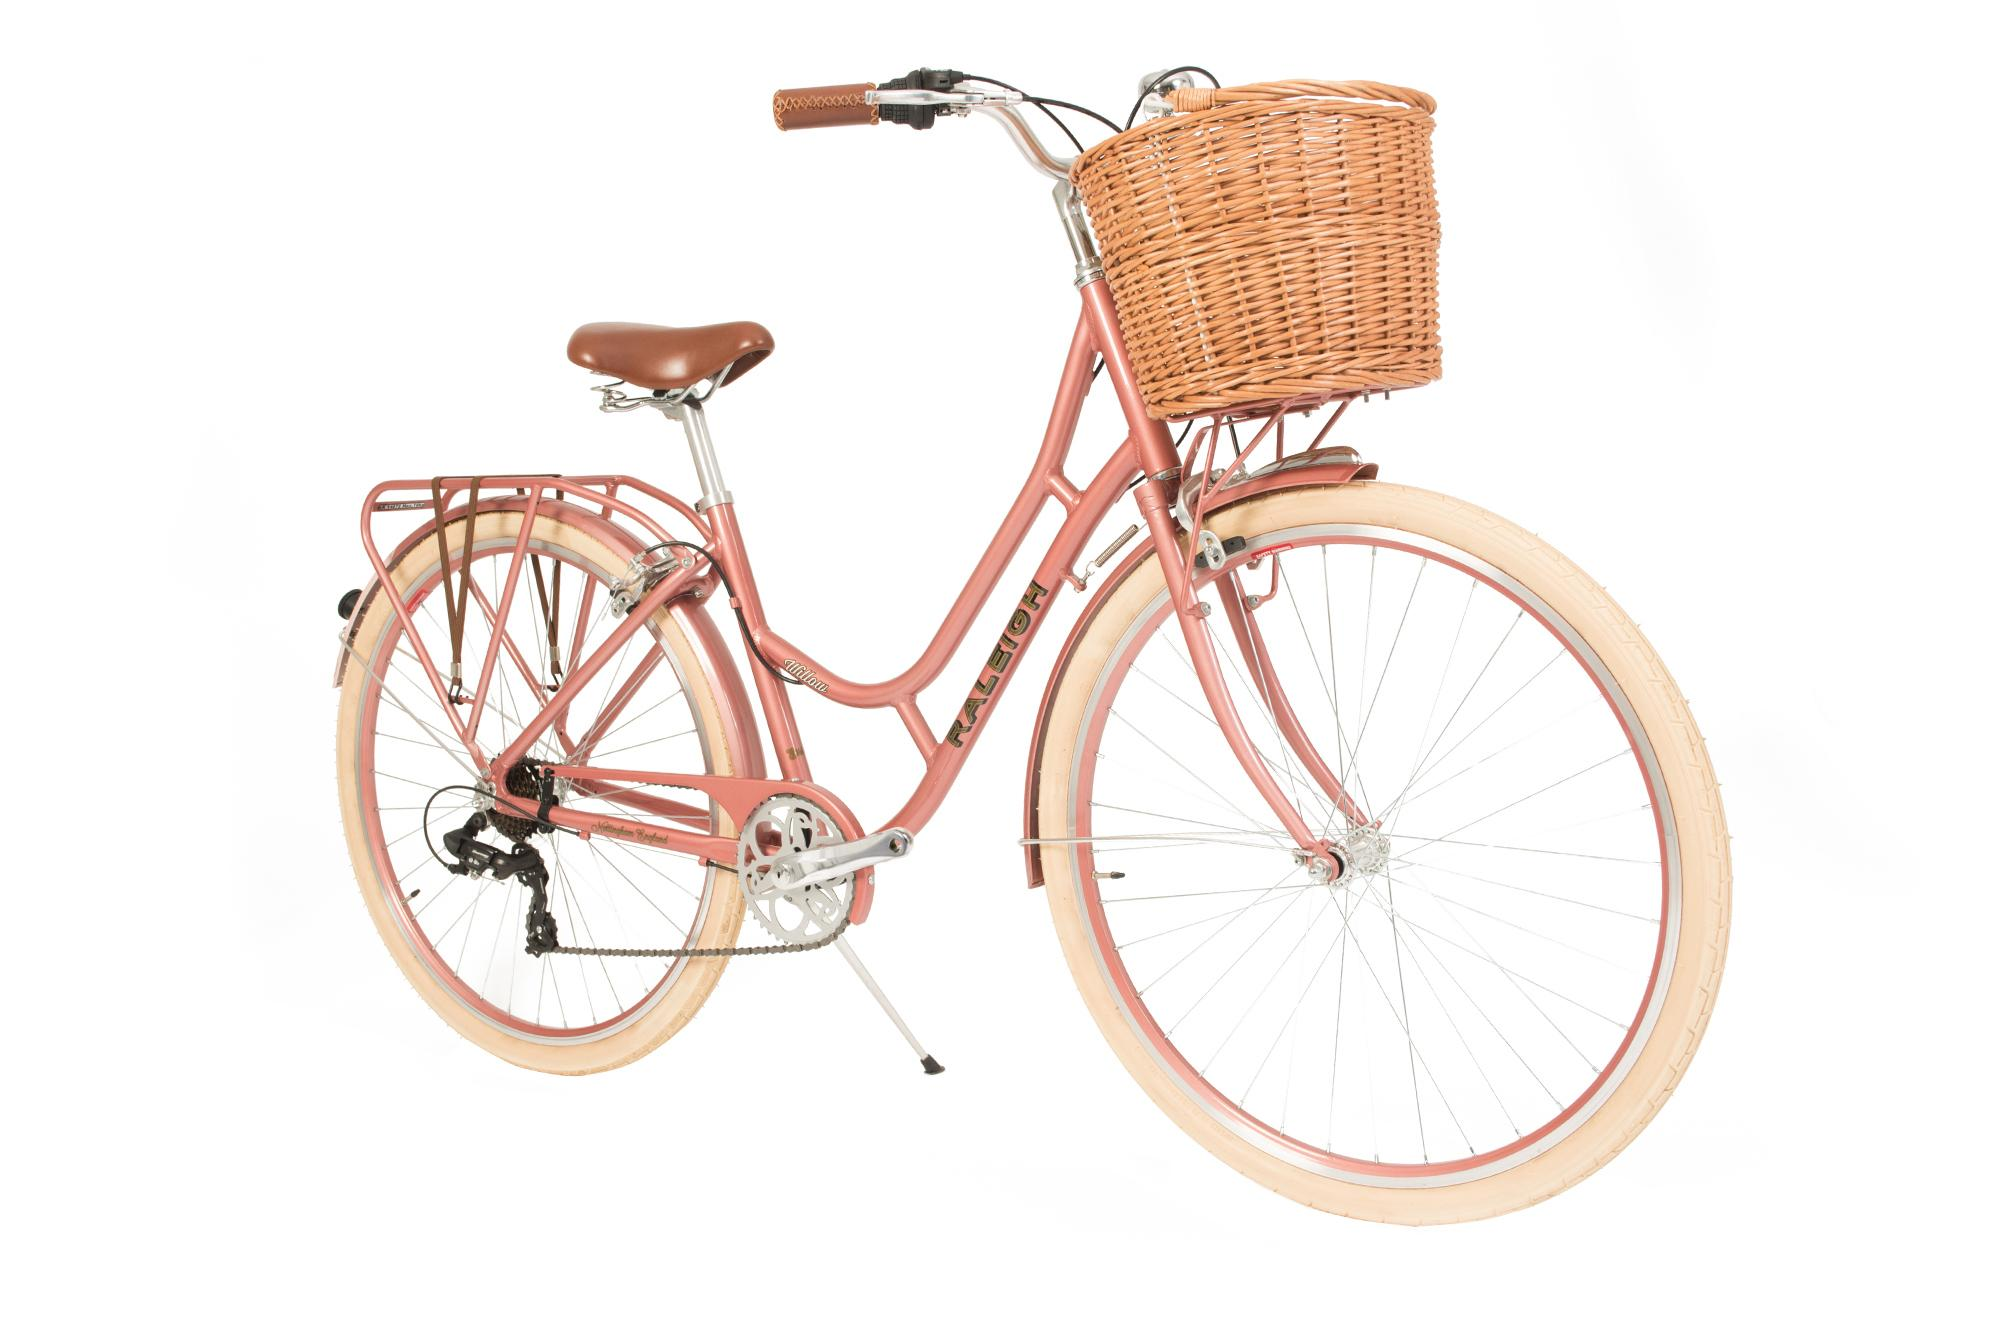 Front side view of the Raleigh Willow classic ladies bike with basket in pink